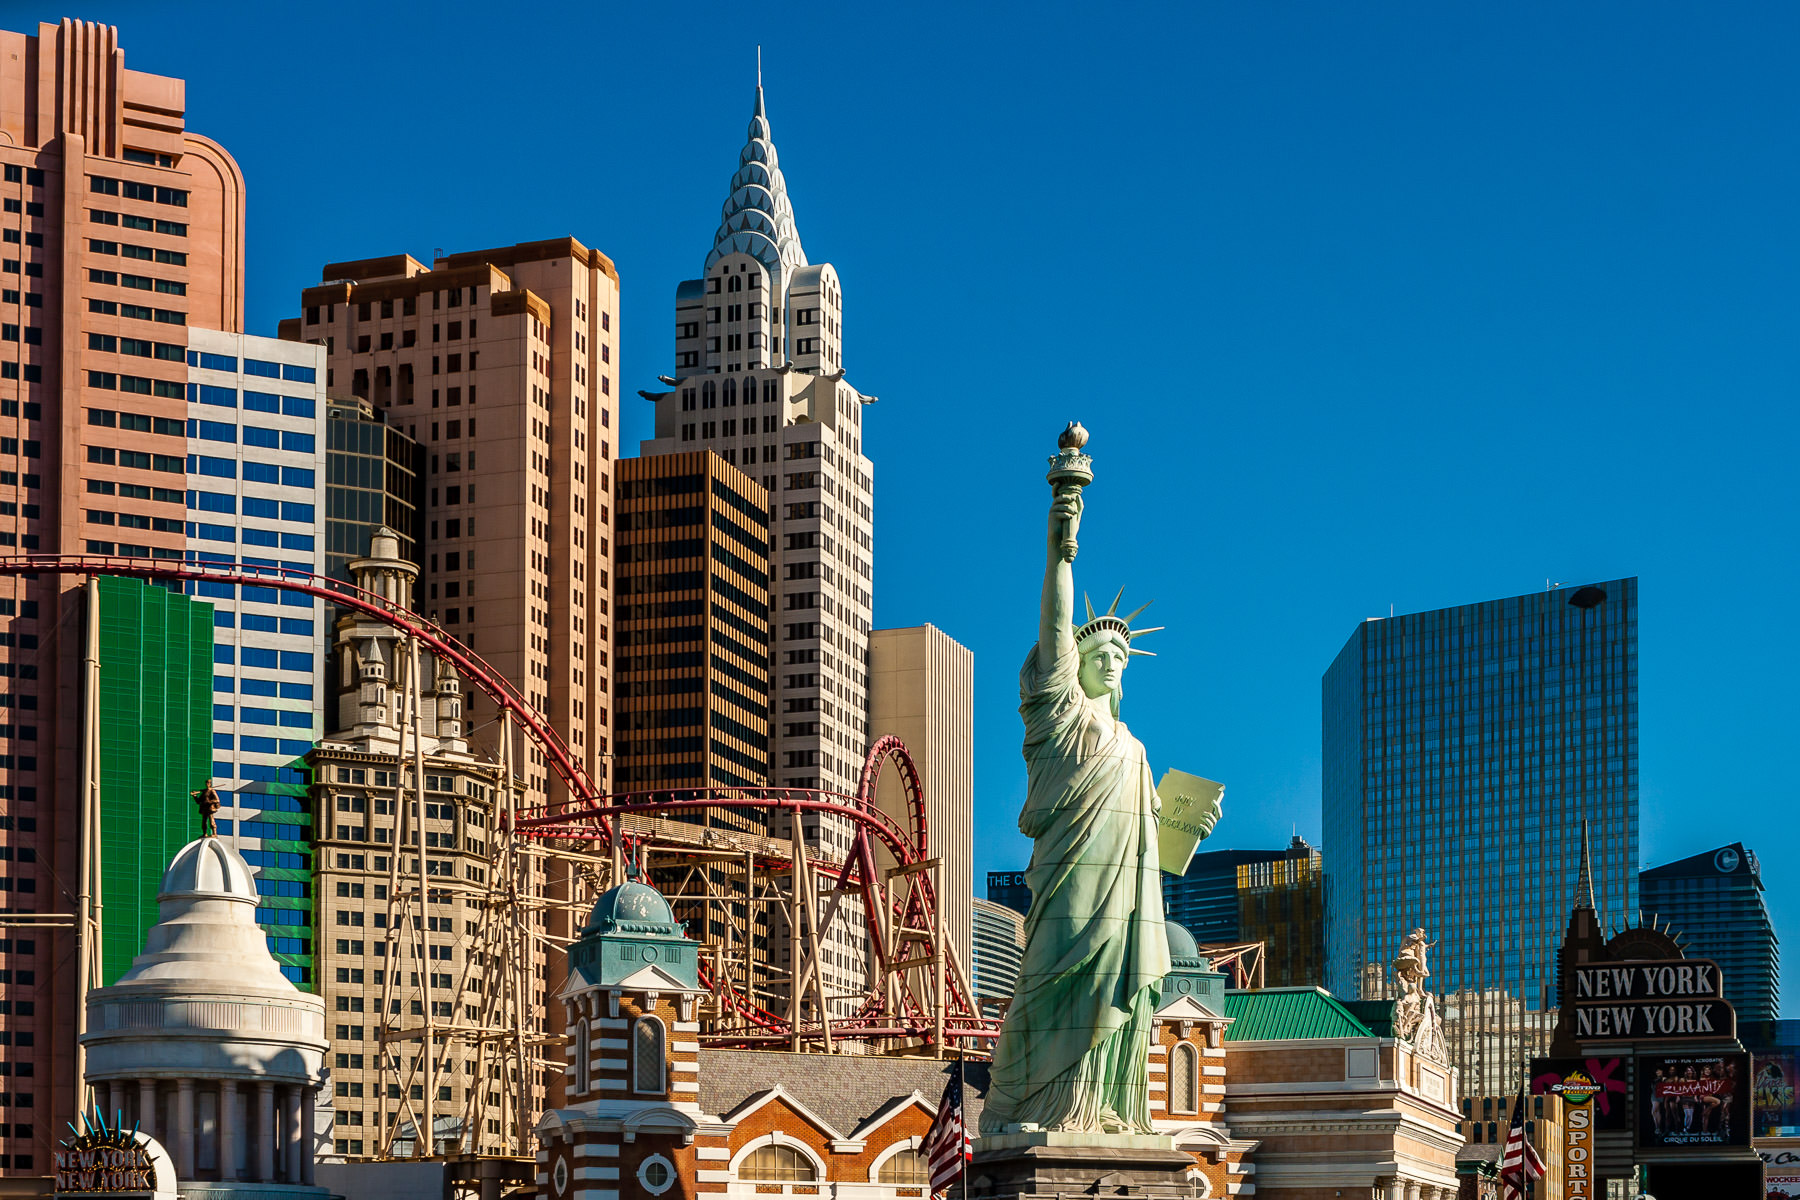 New York New York Hotel & Casino's replica of the Statue of Liberty rises into the Nevada desert sky in Las Vegas.